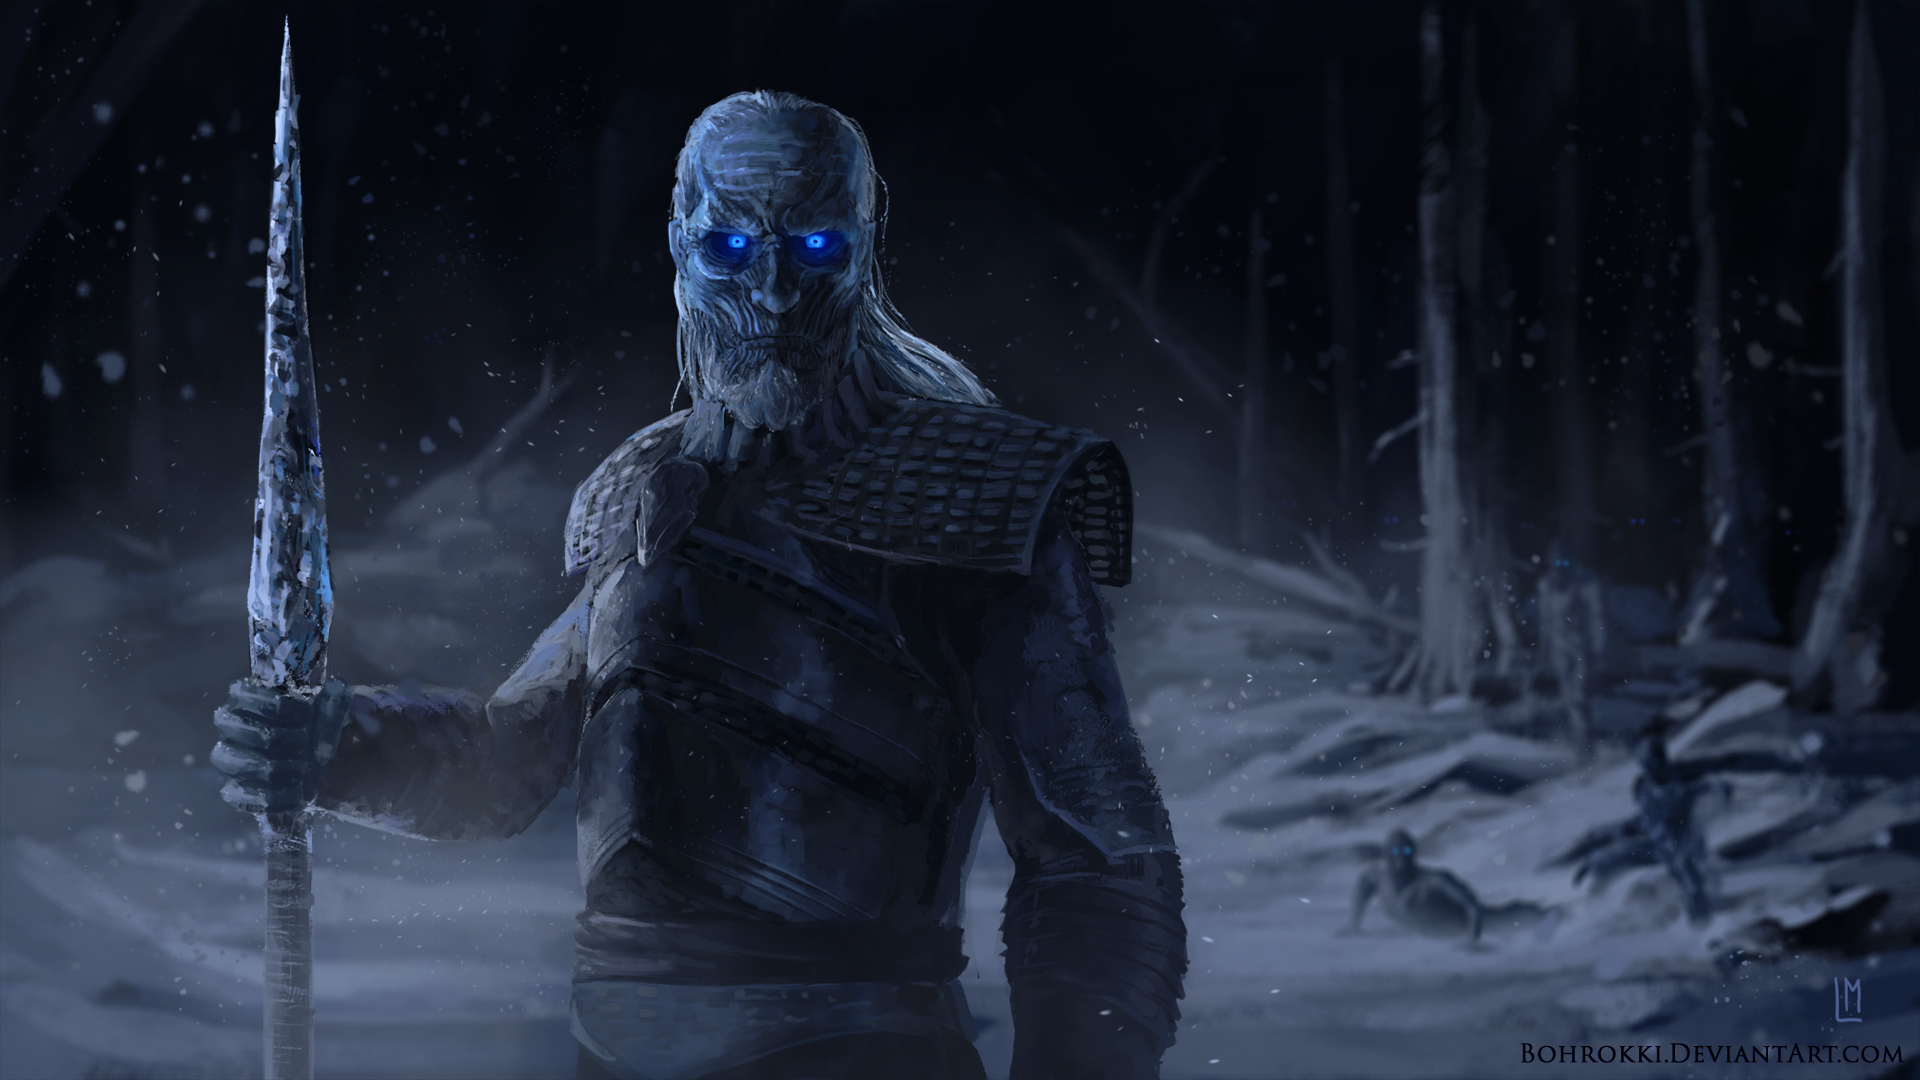 1360x768 White Walkers Artwork Hd Laptop Hd Hd 4k Wallpapers